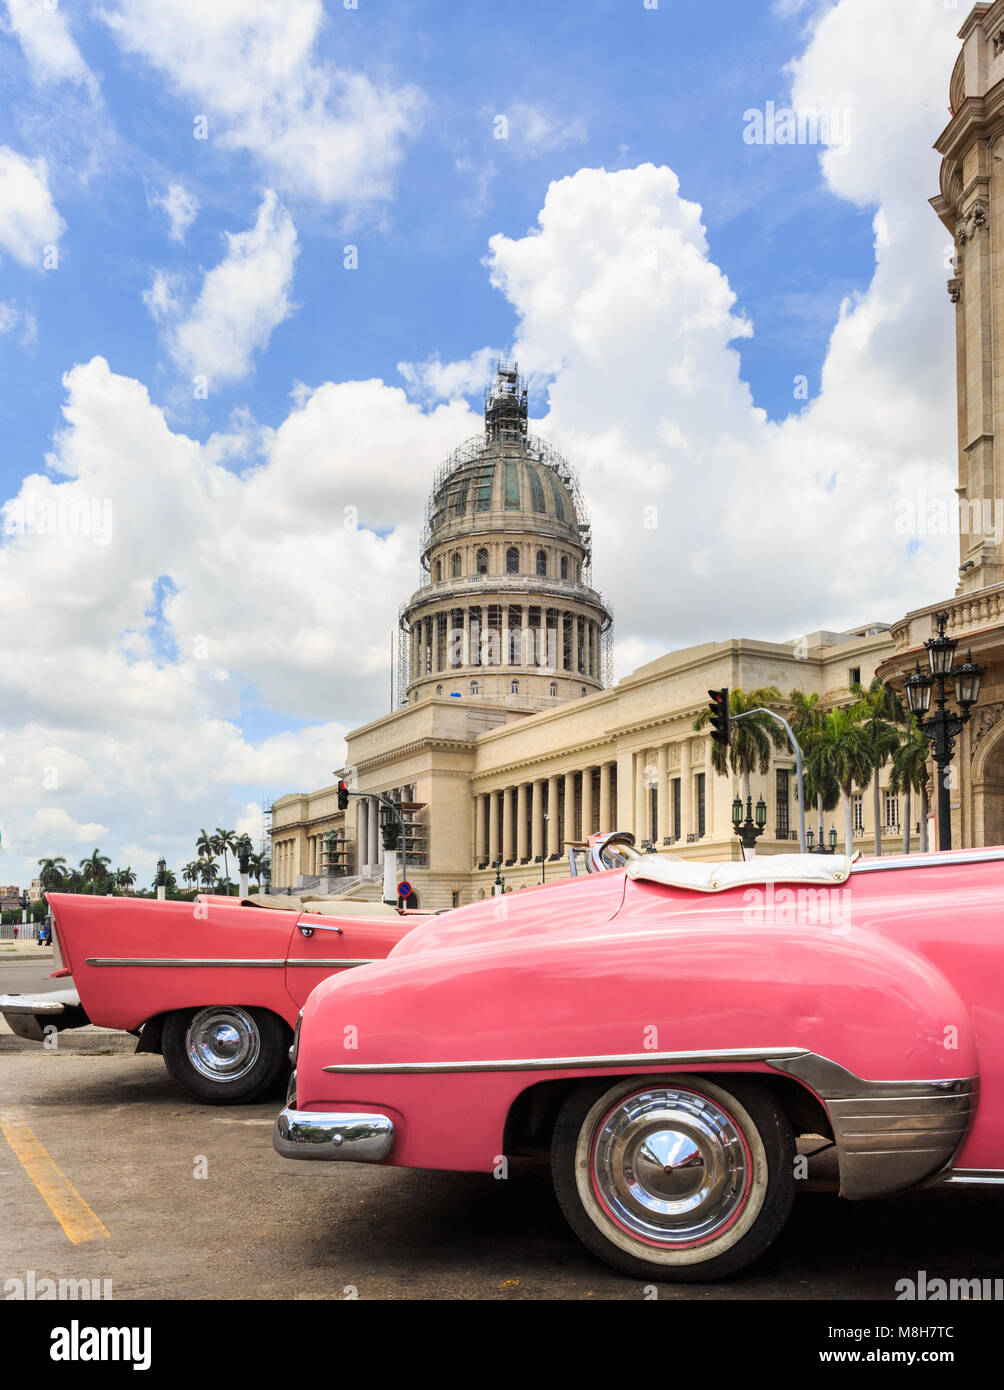 Classic cars in pink and view towards El Capitolio, the capitol ...